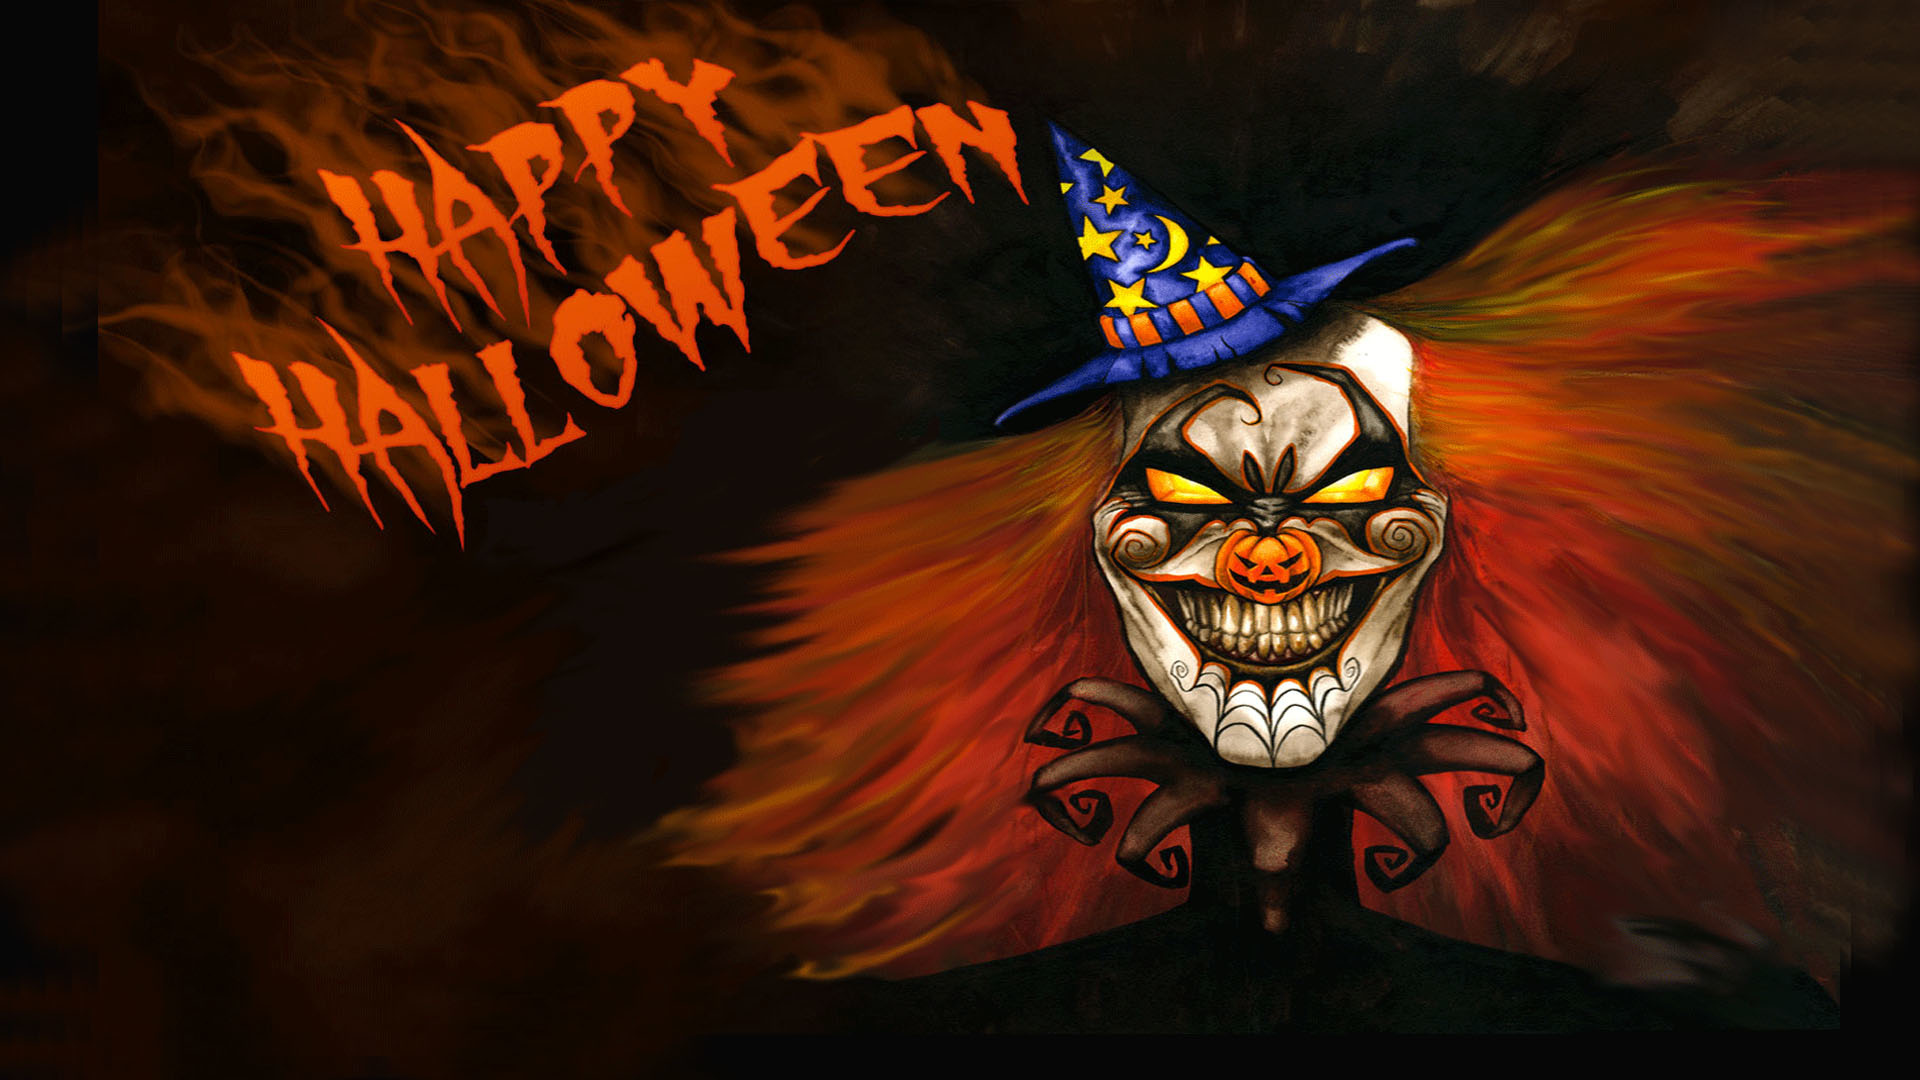 Scary Halloween Images HD 1080P